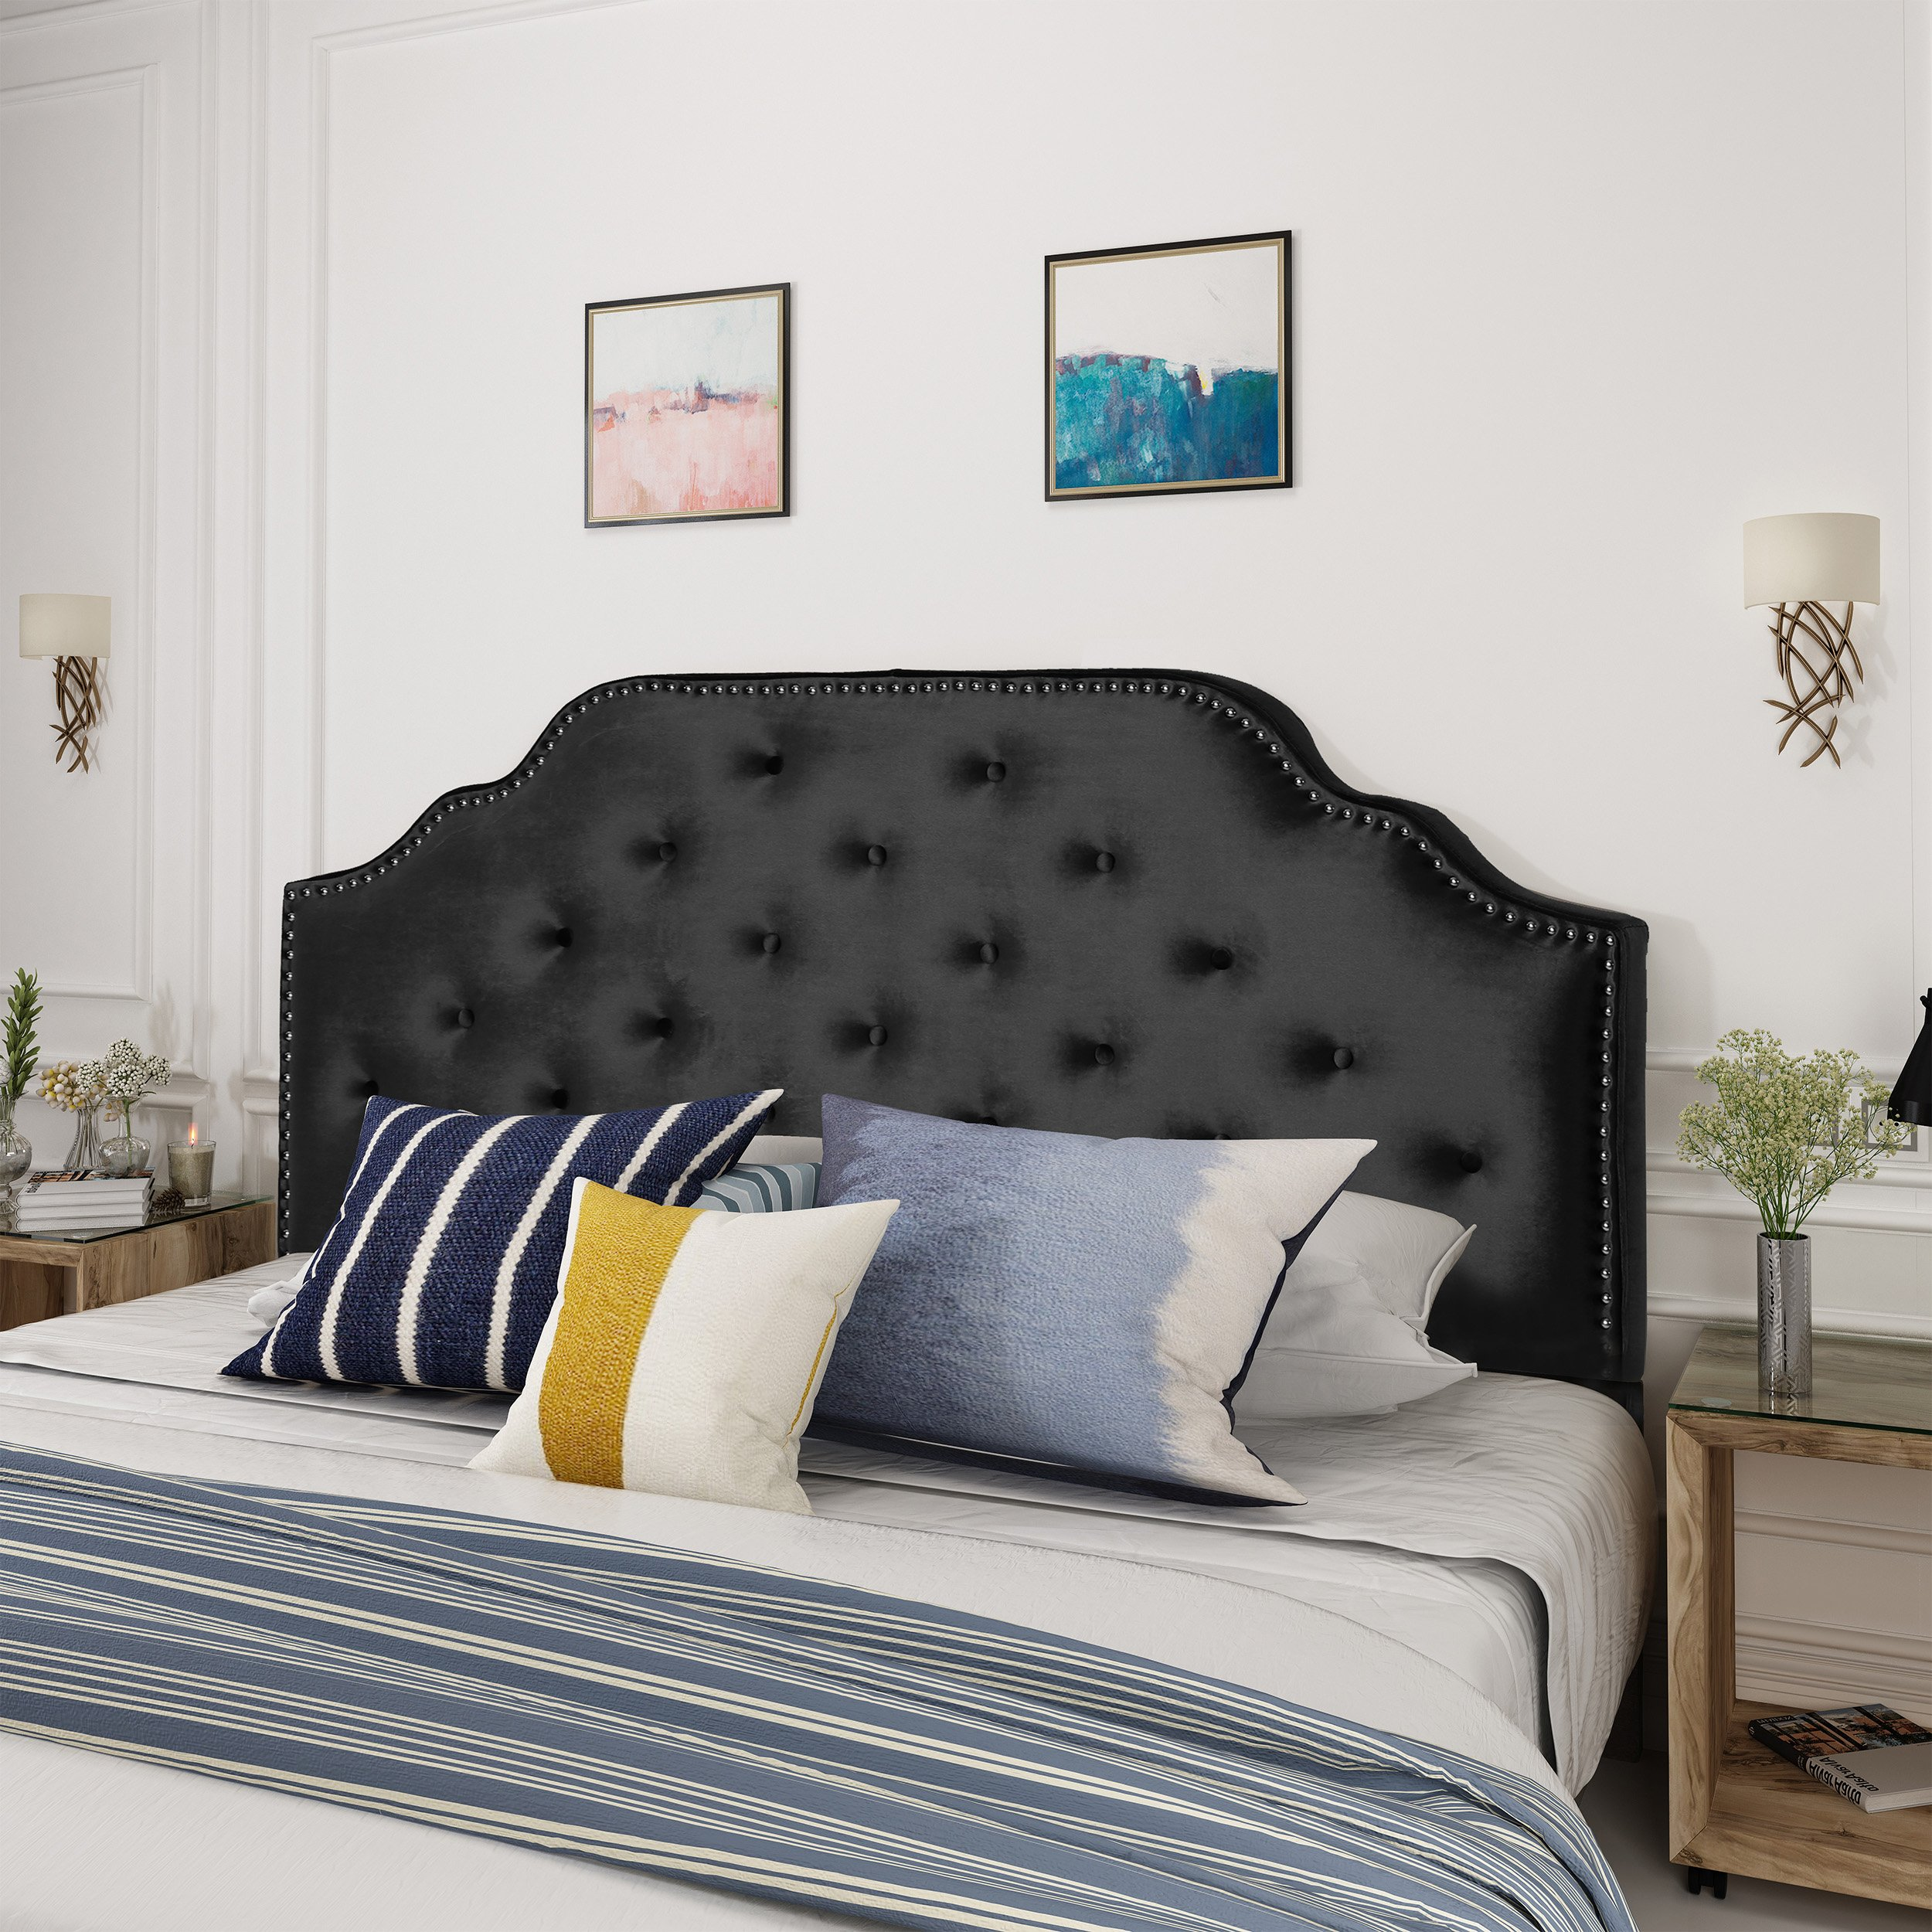 Christopher Knight Home Silas Velvet Full/Queen Headboard, Black by Christopher Knight Home